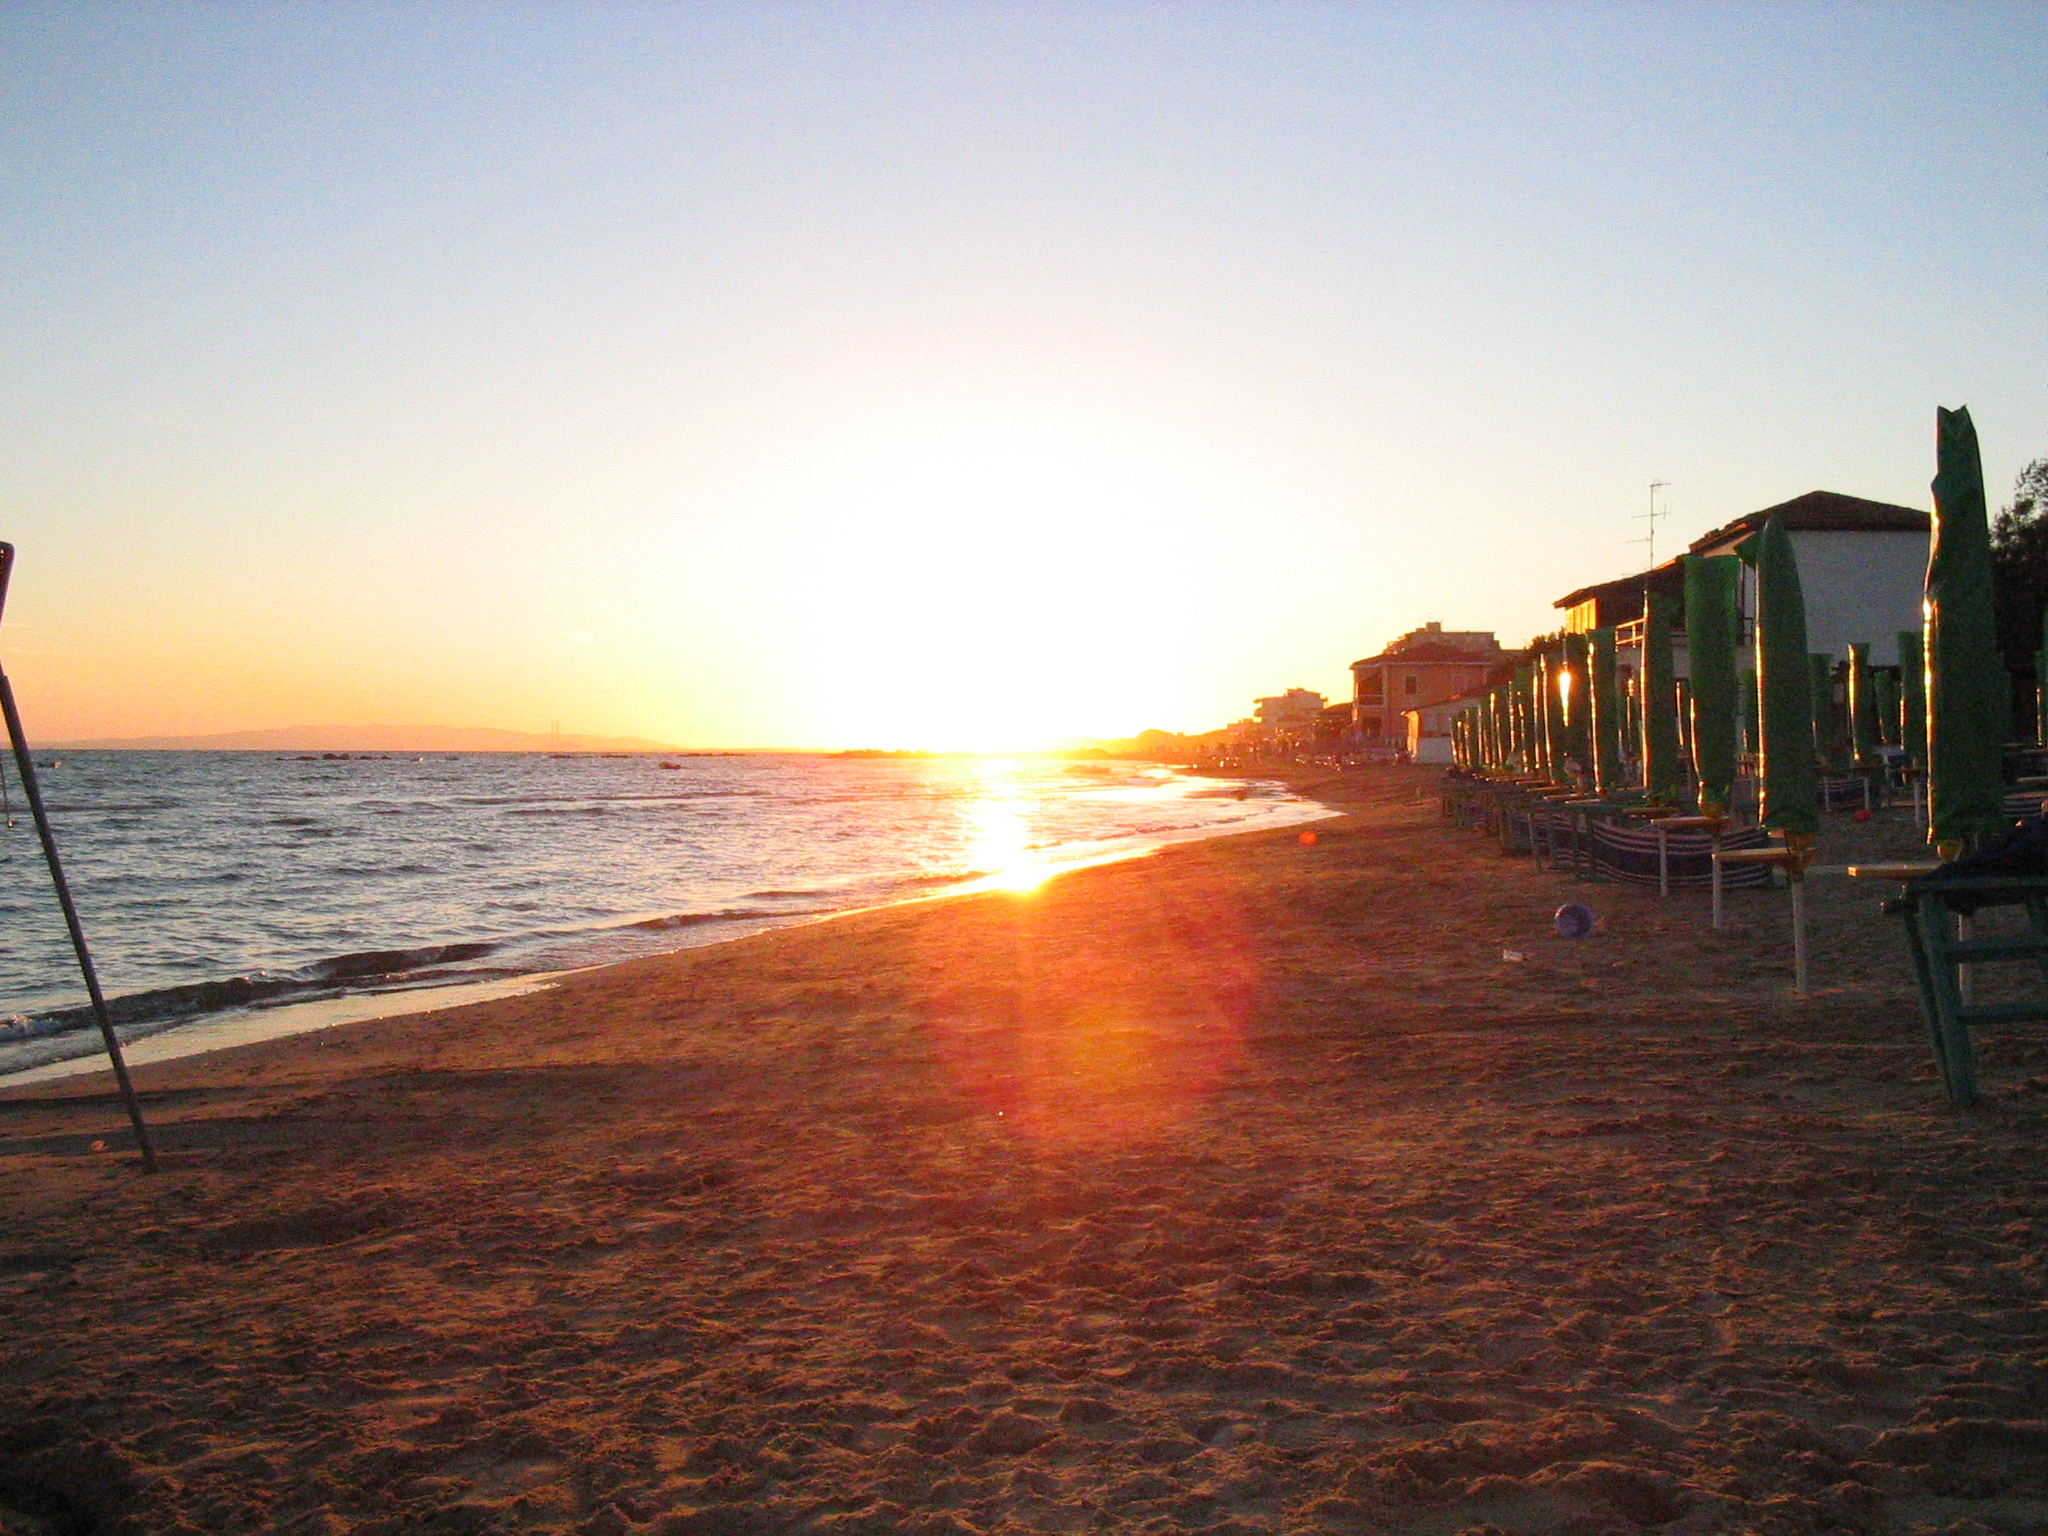 http://upload.wikimedia.org/wikipedia/commons/b/b1/Tramonto_follonica.JPG